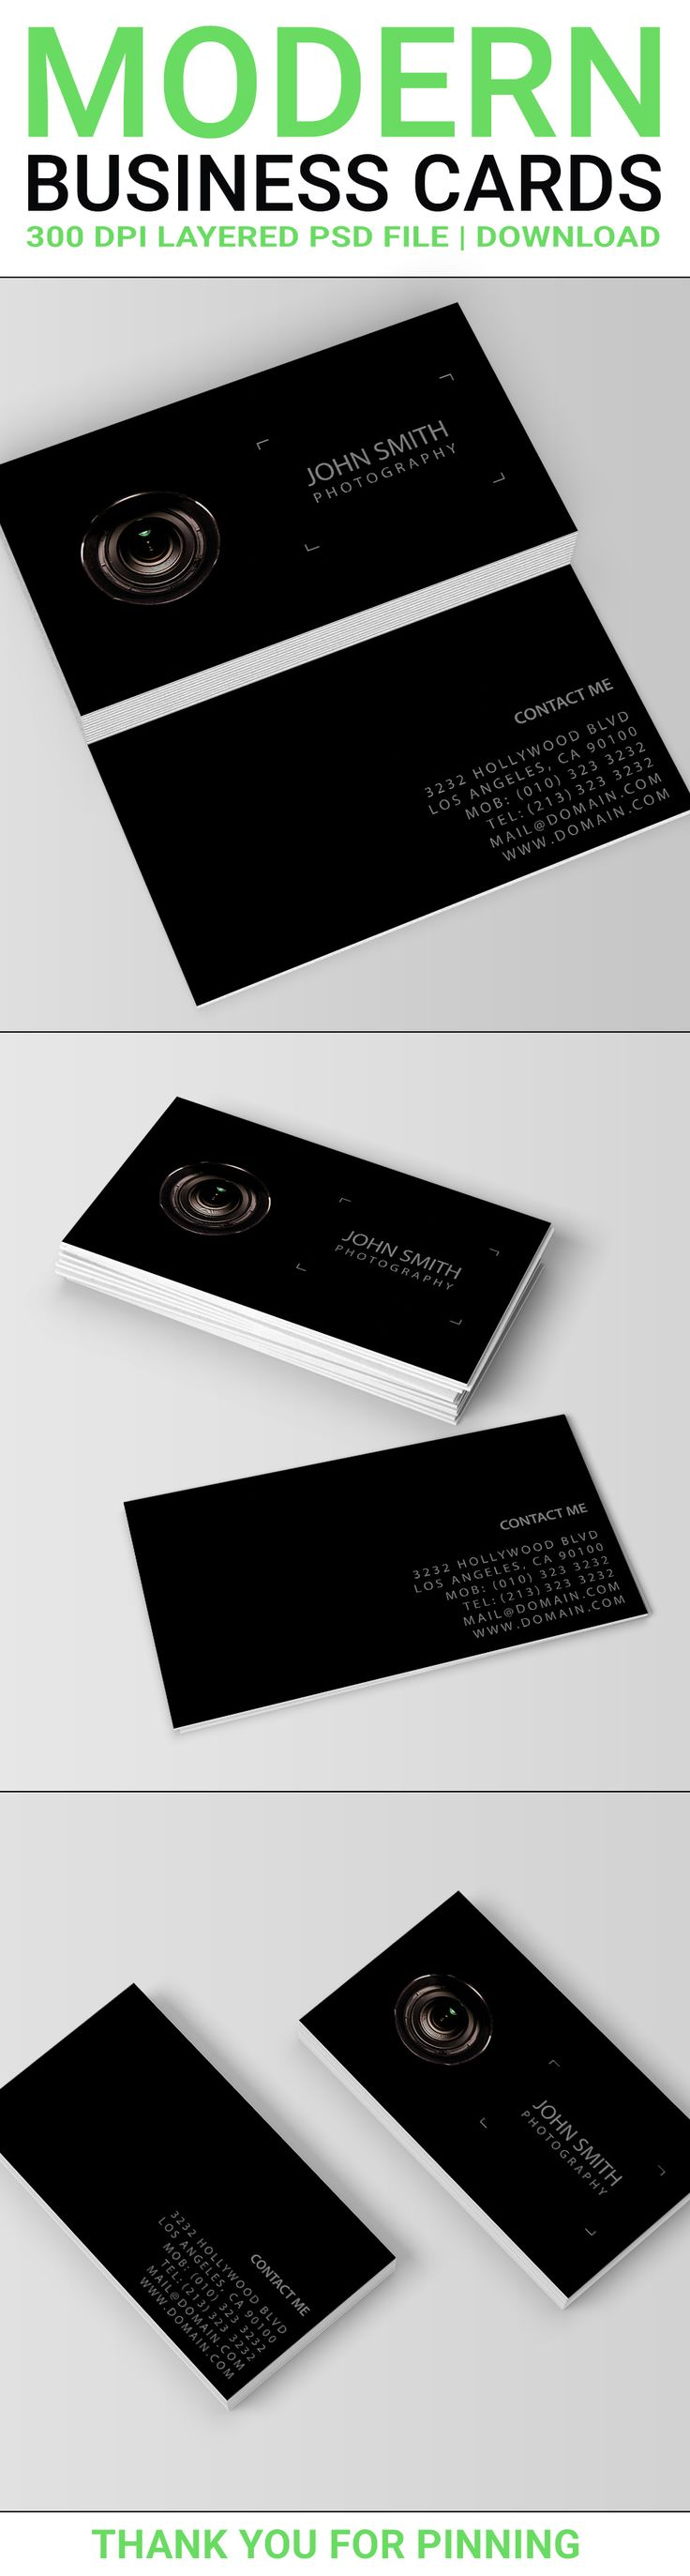 217 besten Business Card Templates Bilder auf Pinterest